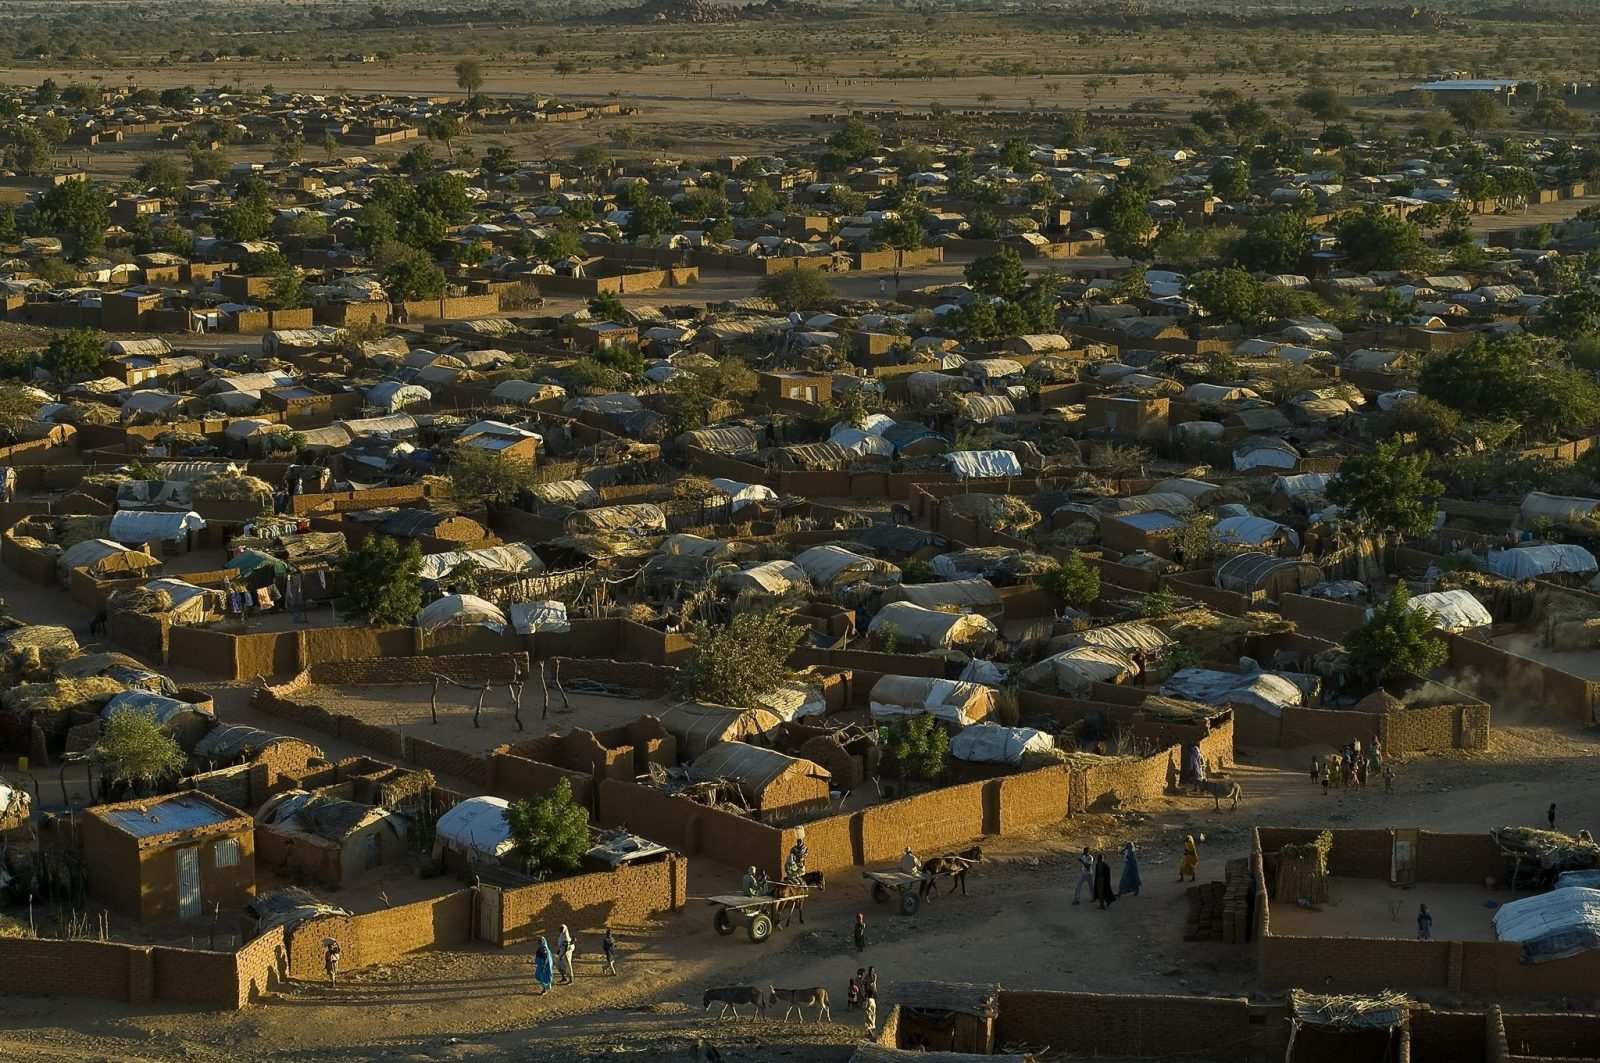 2019 Global Humanitarian Overview: Part 1